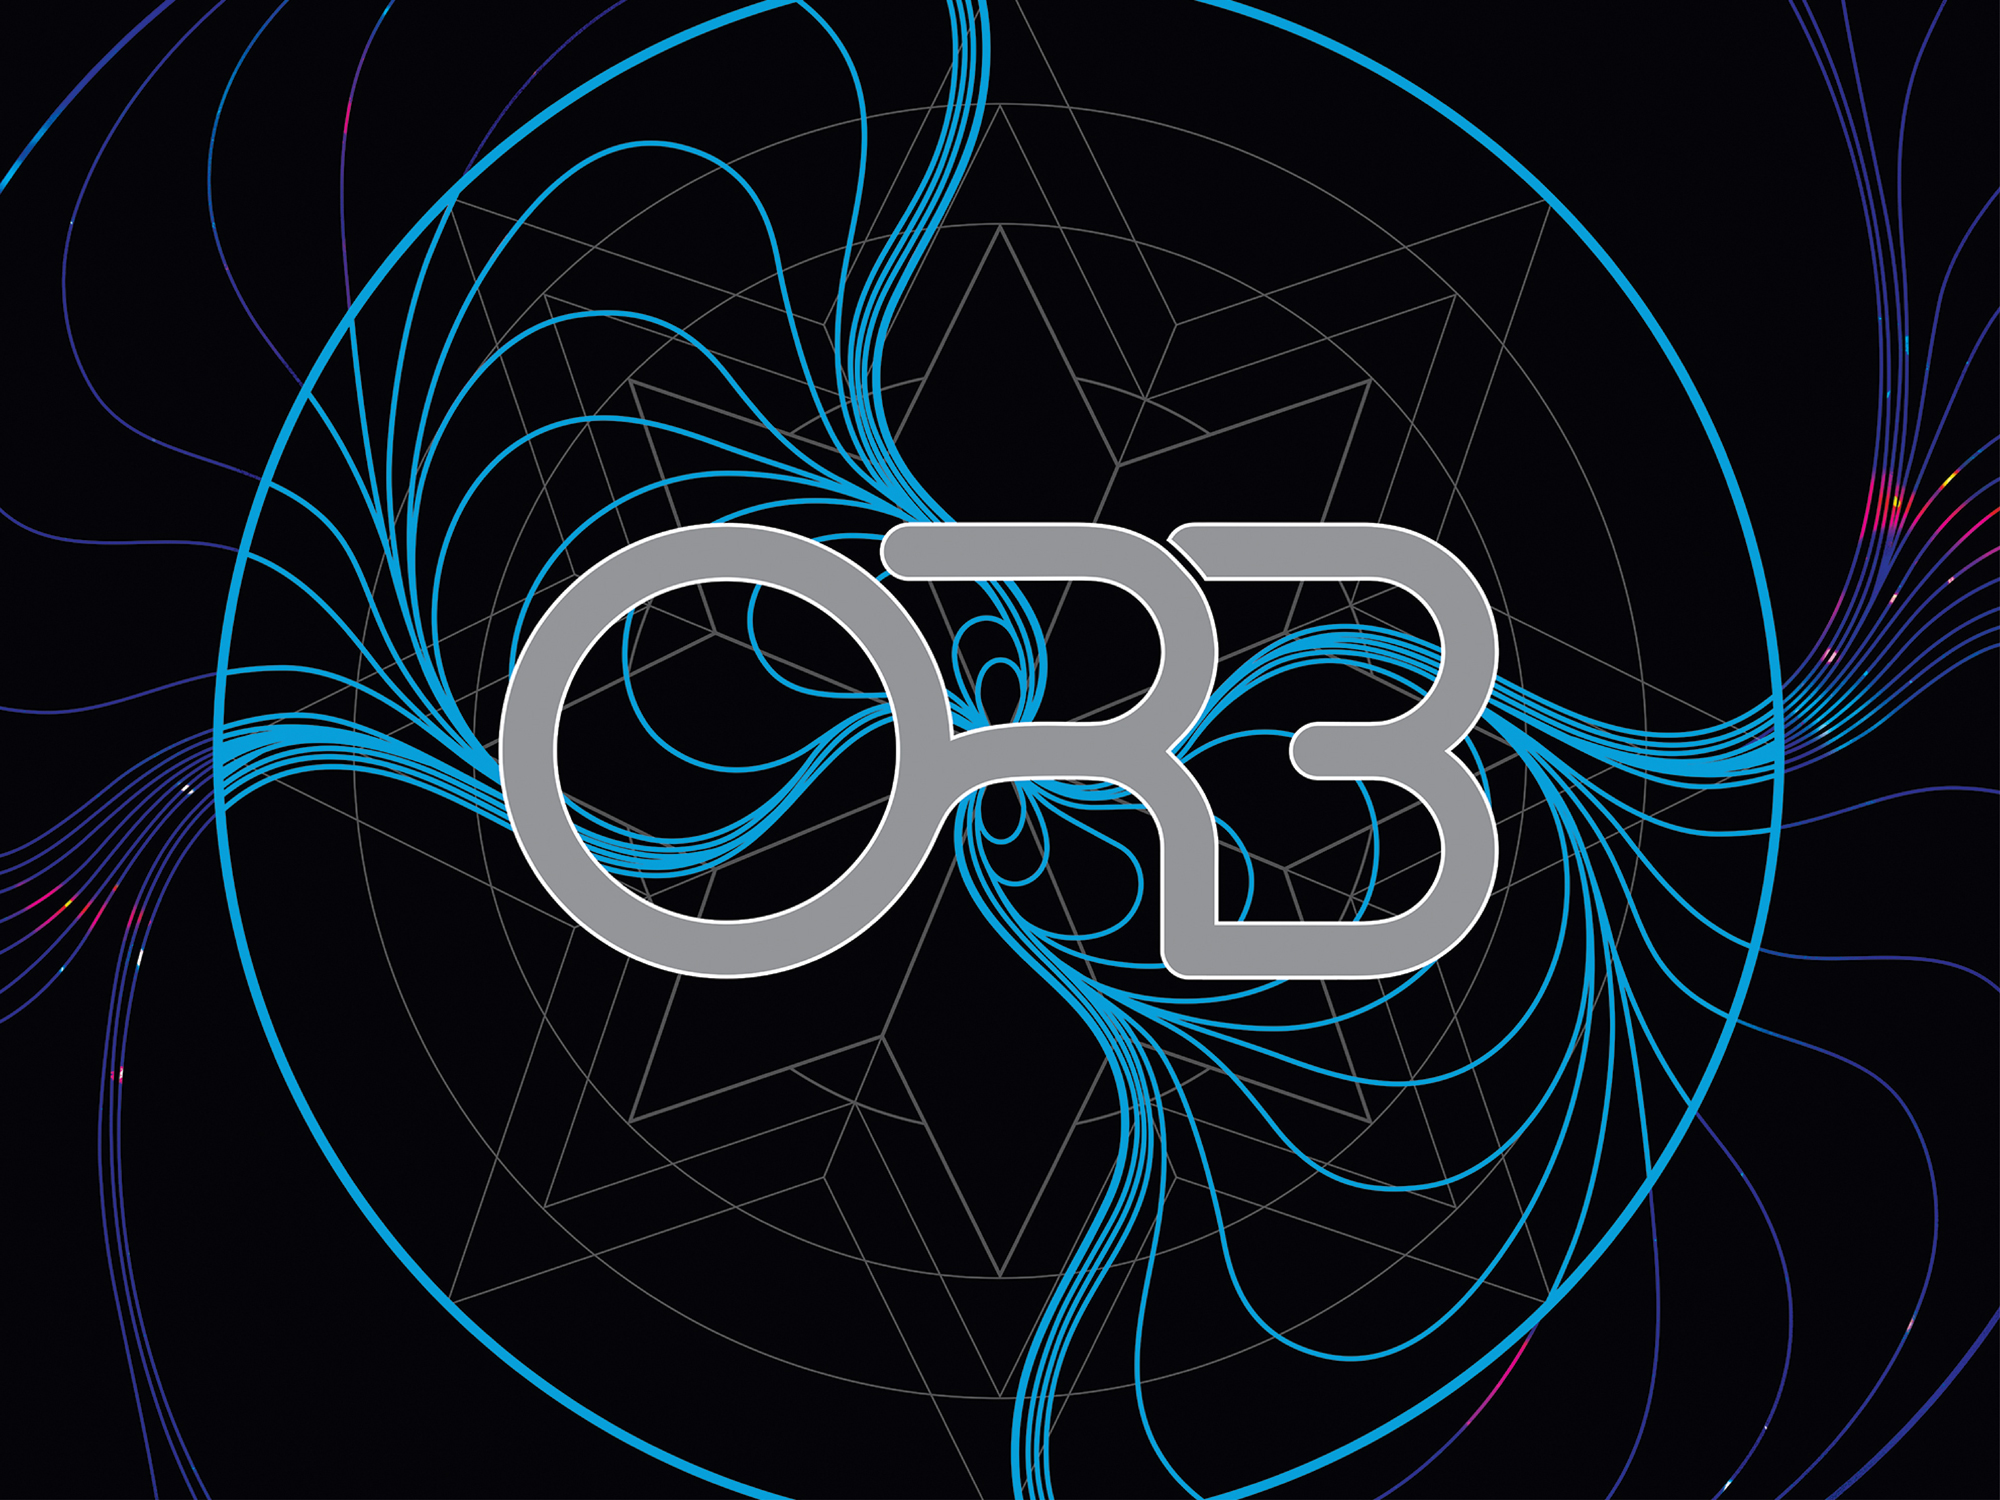 The Orb - IDENTITY / creative direction / album covers / Merchandise / design for live events